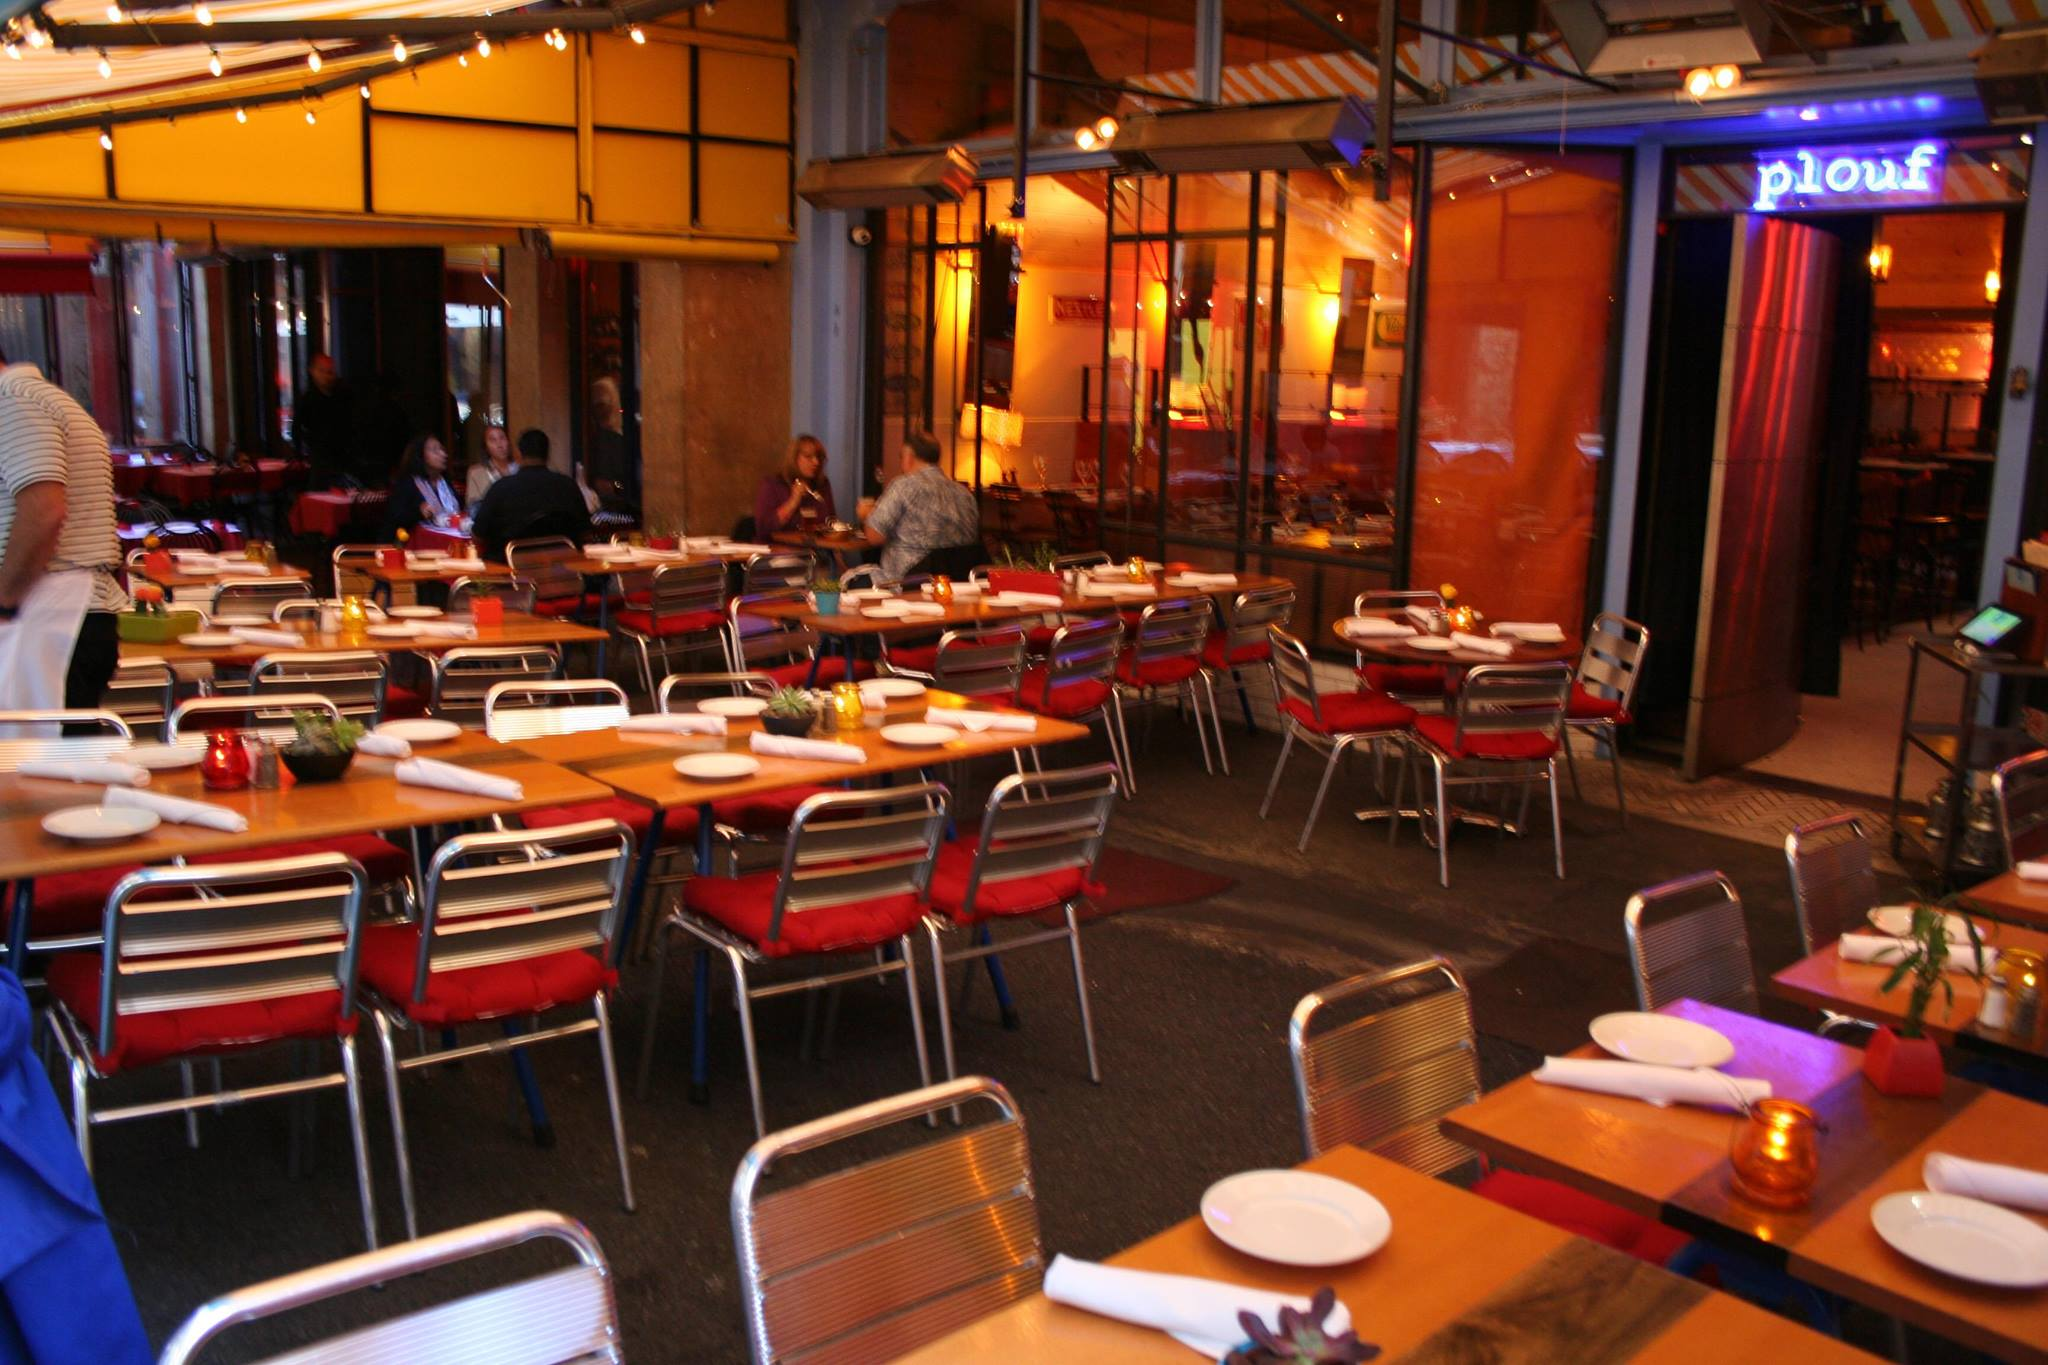 Photo #2 Outdoor Patio at Plouf